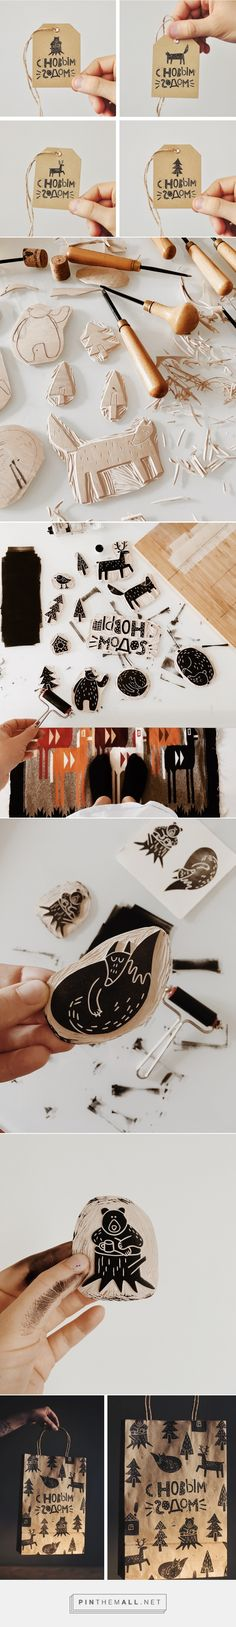 wood prints on Behance... - a grouped images picture - Pin Them All